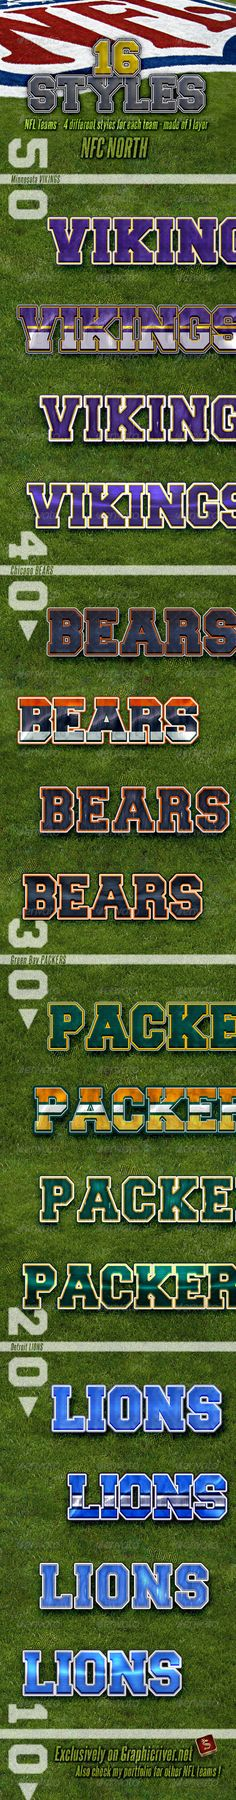 NFL Football Styles - NFC North #GraphicRiver NFL Football Photoshop Layer Styles – Part 6 NFC NORTH NFL Football Photoshop layer styles –are the best for your titles, buttons, shapes, etc. Styles are usable for any Text and it also looks good on Shapes or Buttons. Don't forget to check all parts of NFL Team Styles NFL Football Layer Styles – Features All styles are made of 1 layer only Unique Styles Applicable with just one click Unique look and clean design Can be used anywhere ASL and PSD…